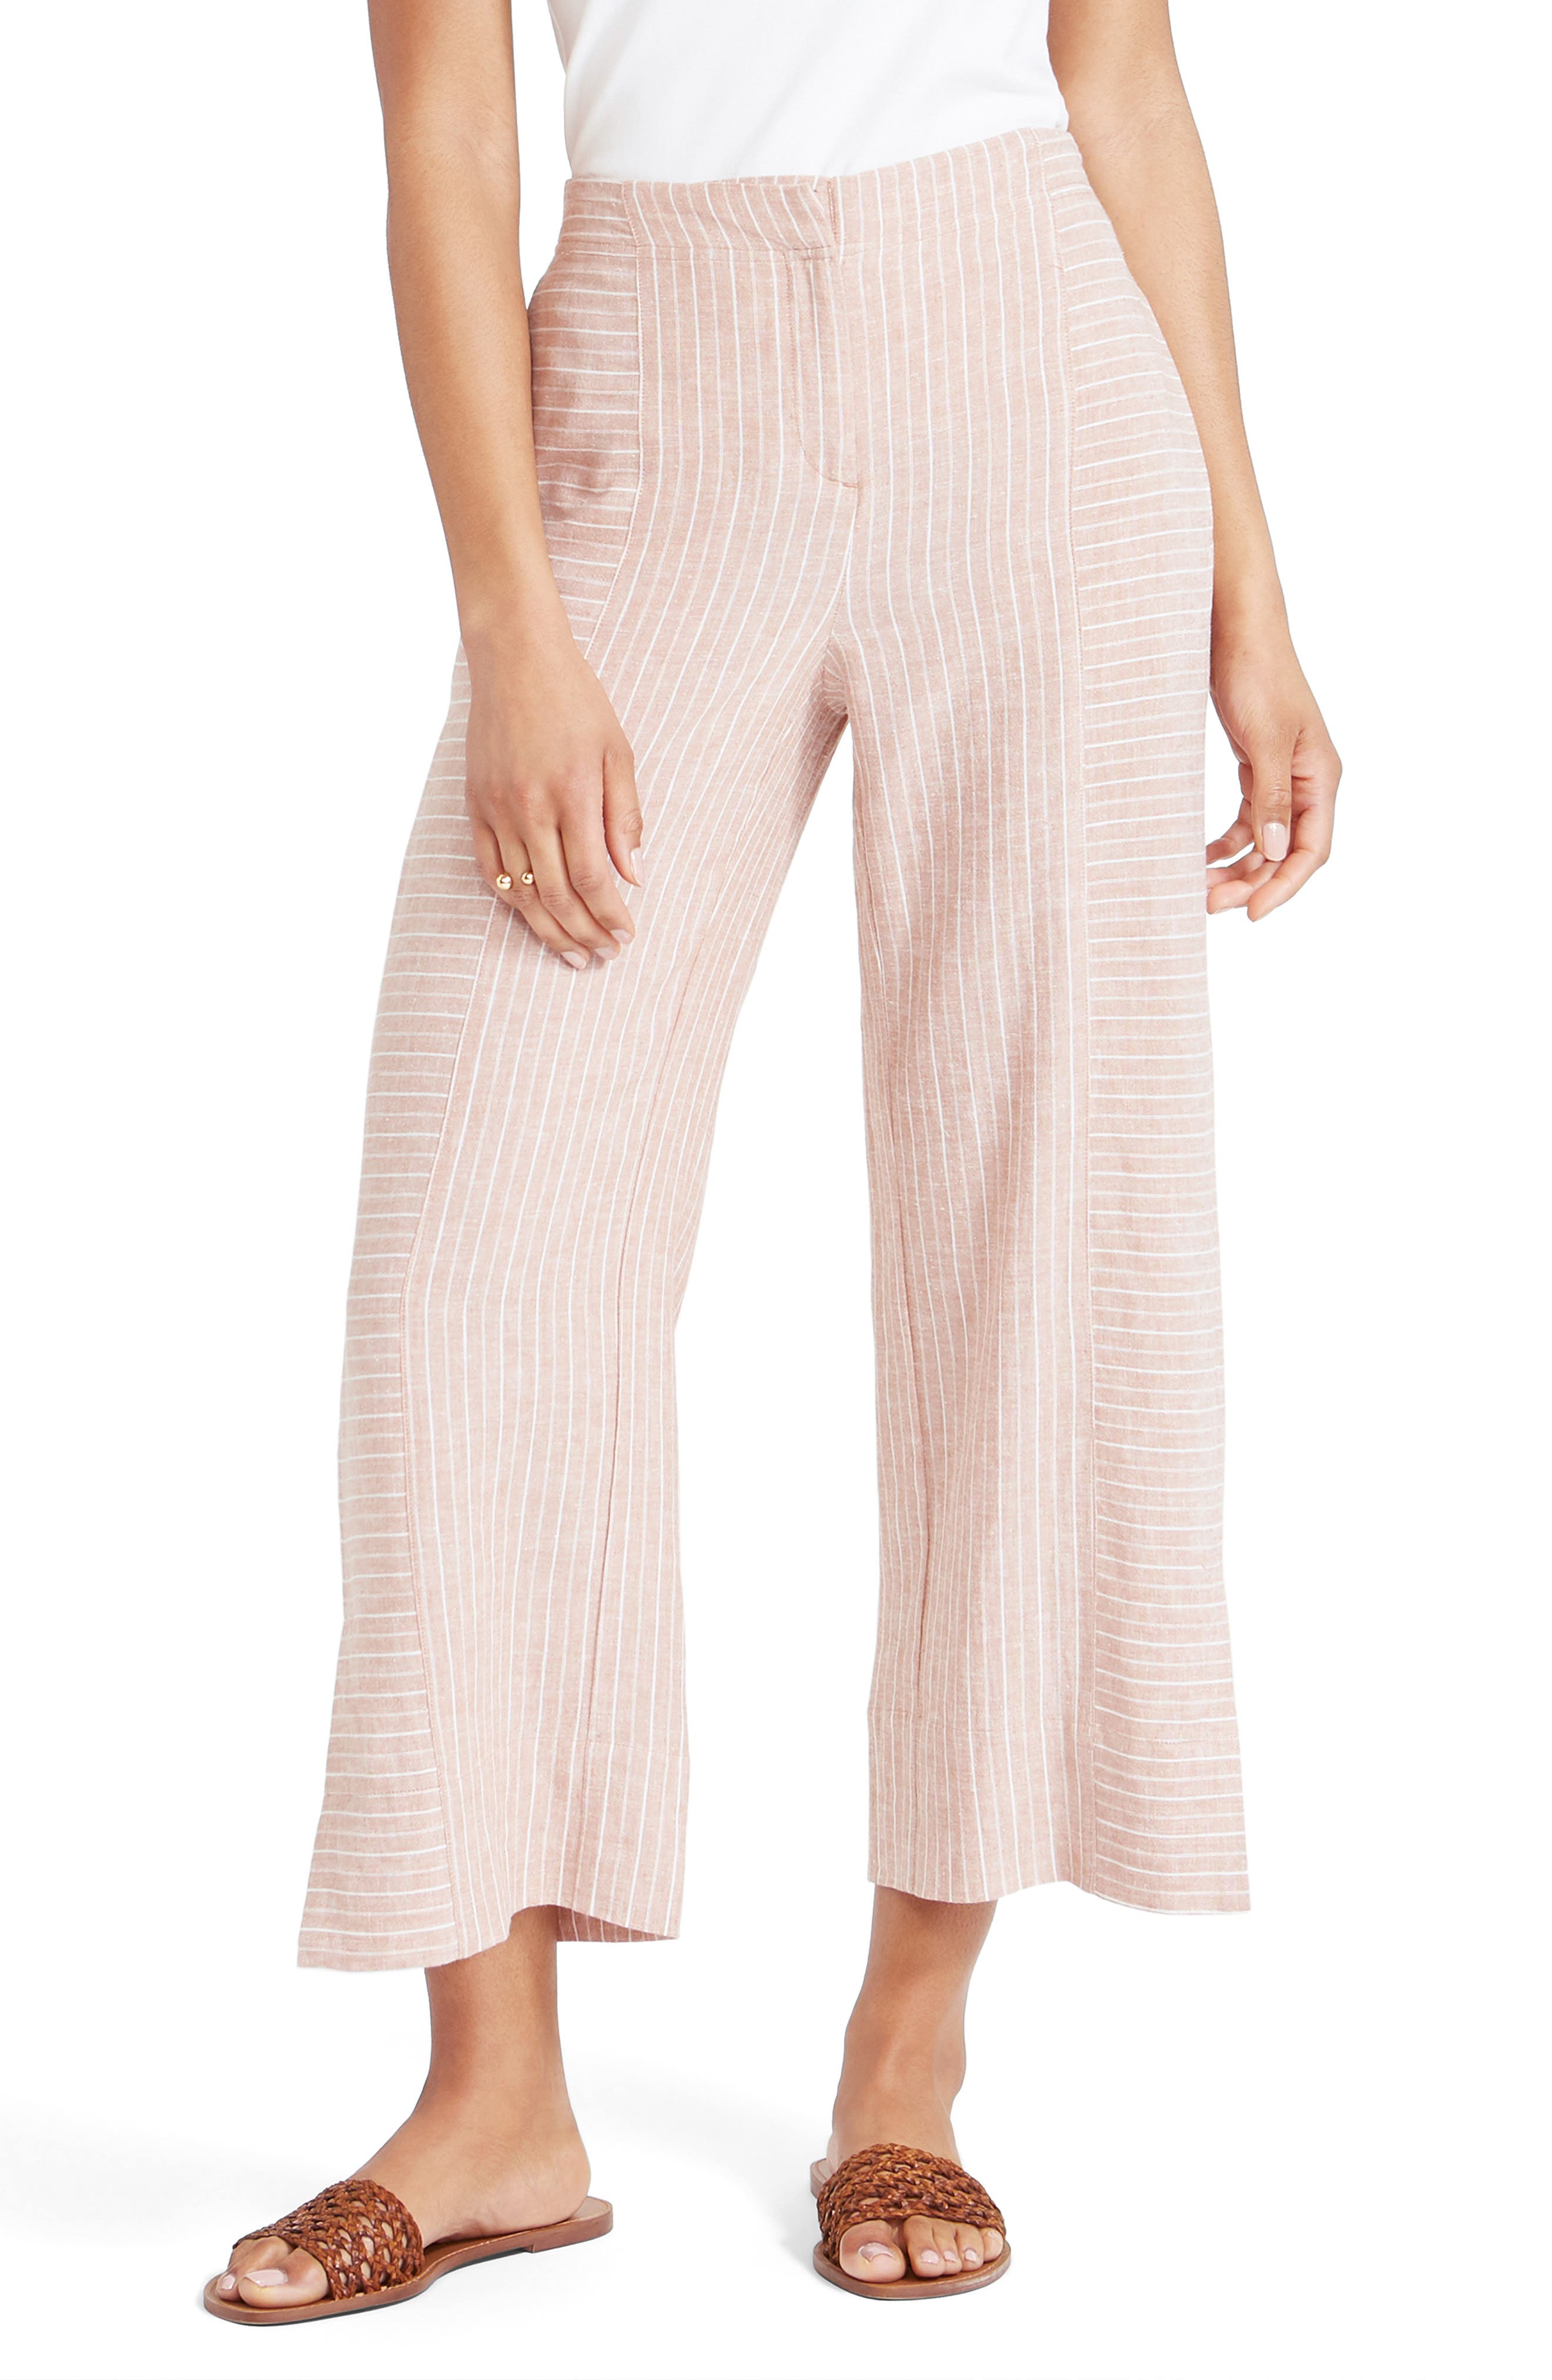 These pinstriped pants check all the right boxes for hot weather: easy pull-on styling, breezy wide legs and a linen blend with a cool, crisp look and feel. Style Name: Nic+Zoe Central Park Crop Pants (Regular & Petite). Style Number: 6039906. Available in stores.